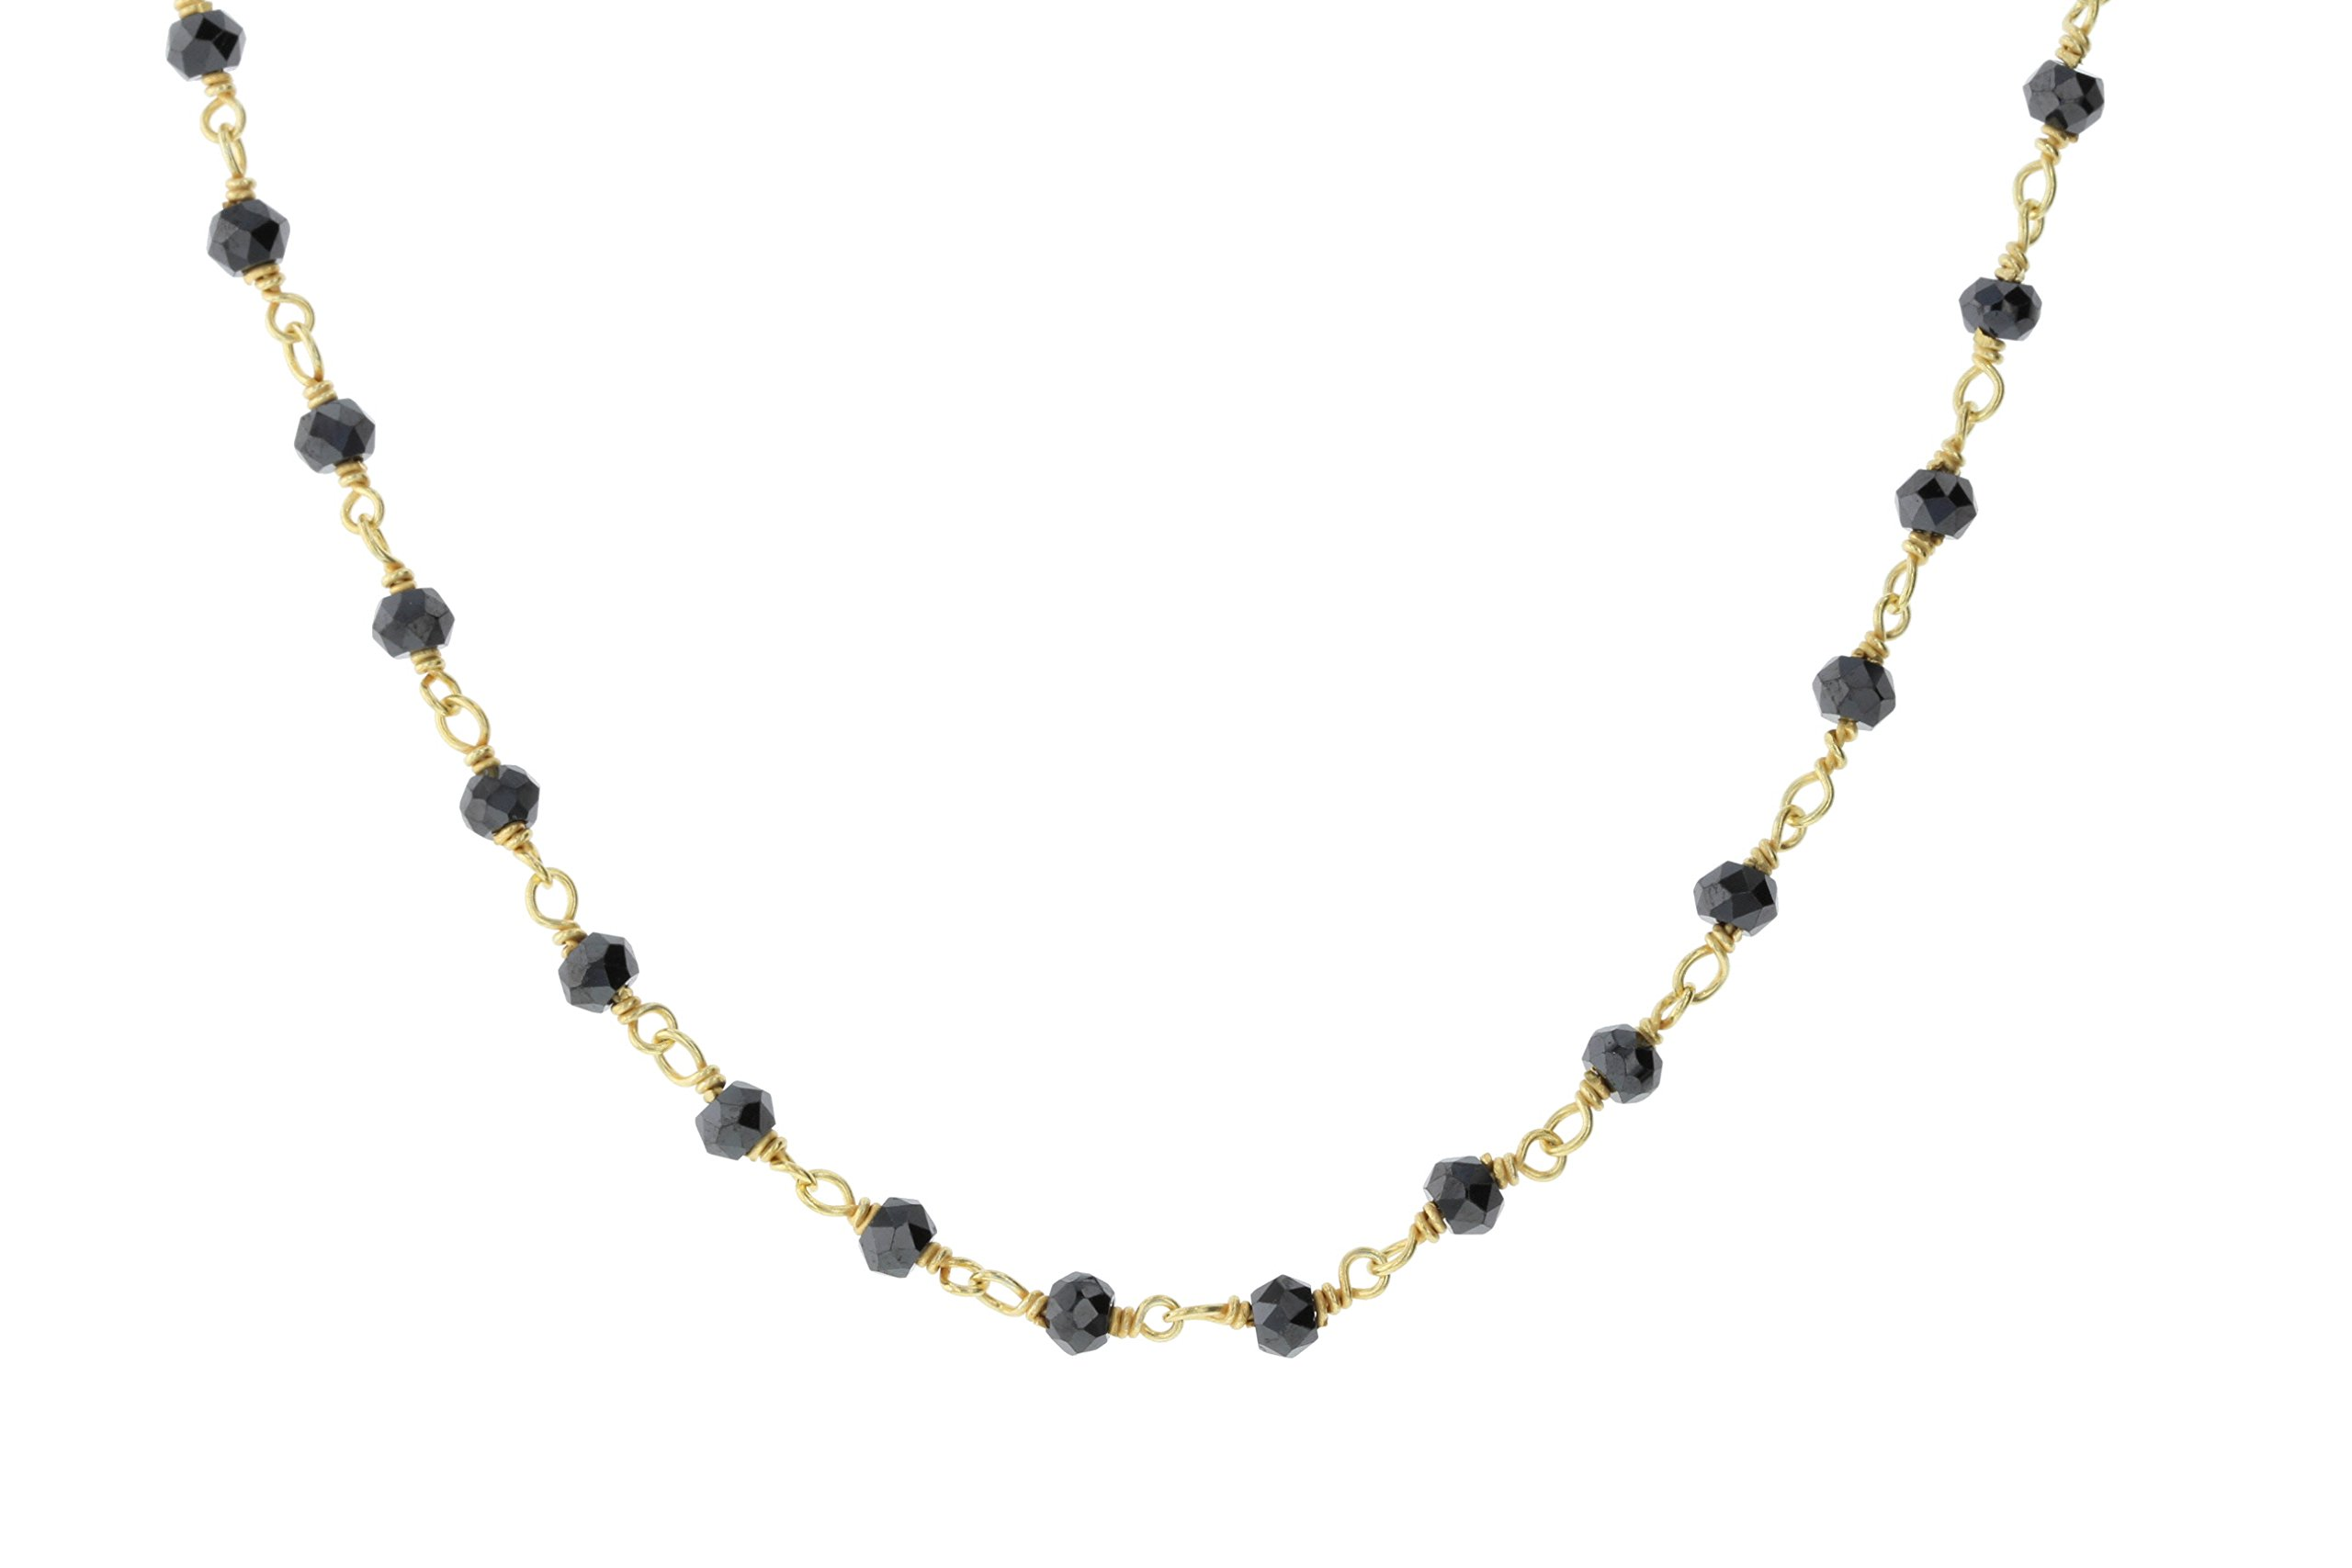 Gold-Tone Sterling Silver Wire Black Simulated CZ Bead Chain Link Handmade Rosary Bracelet Anklet 5 Inches